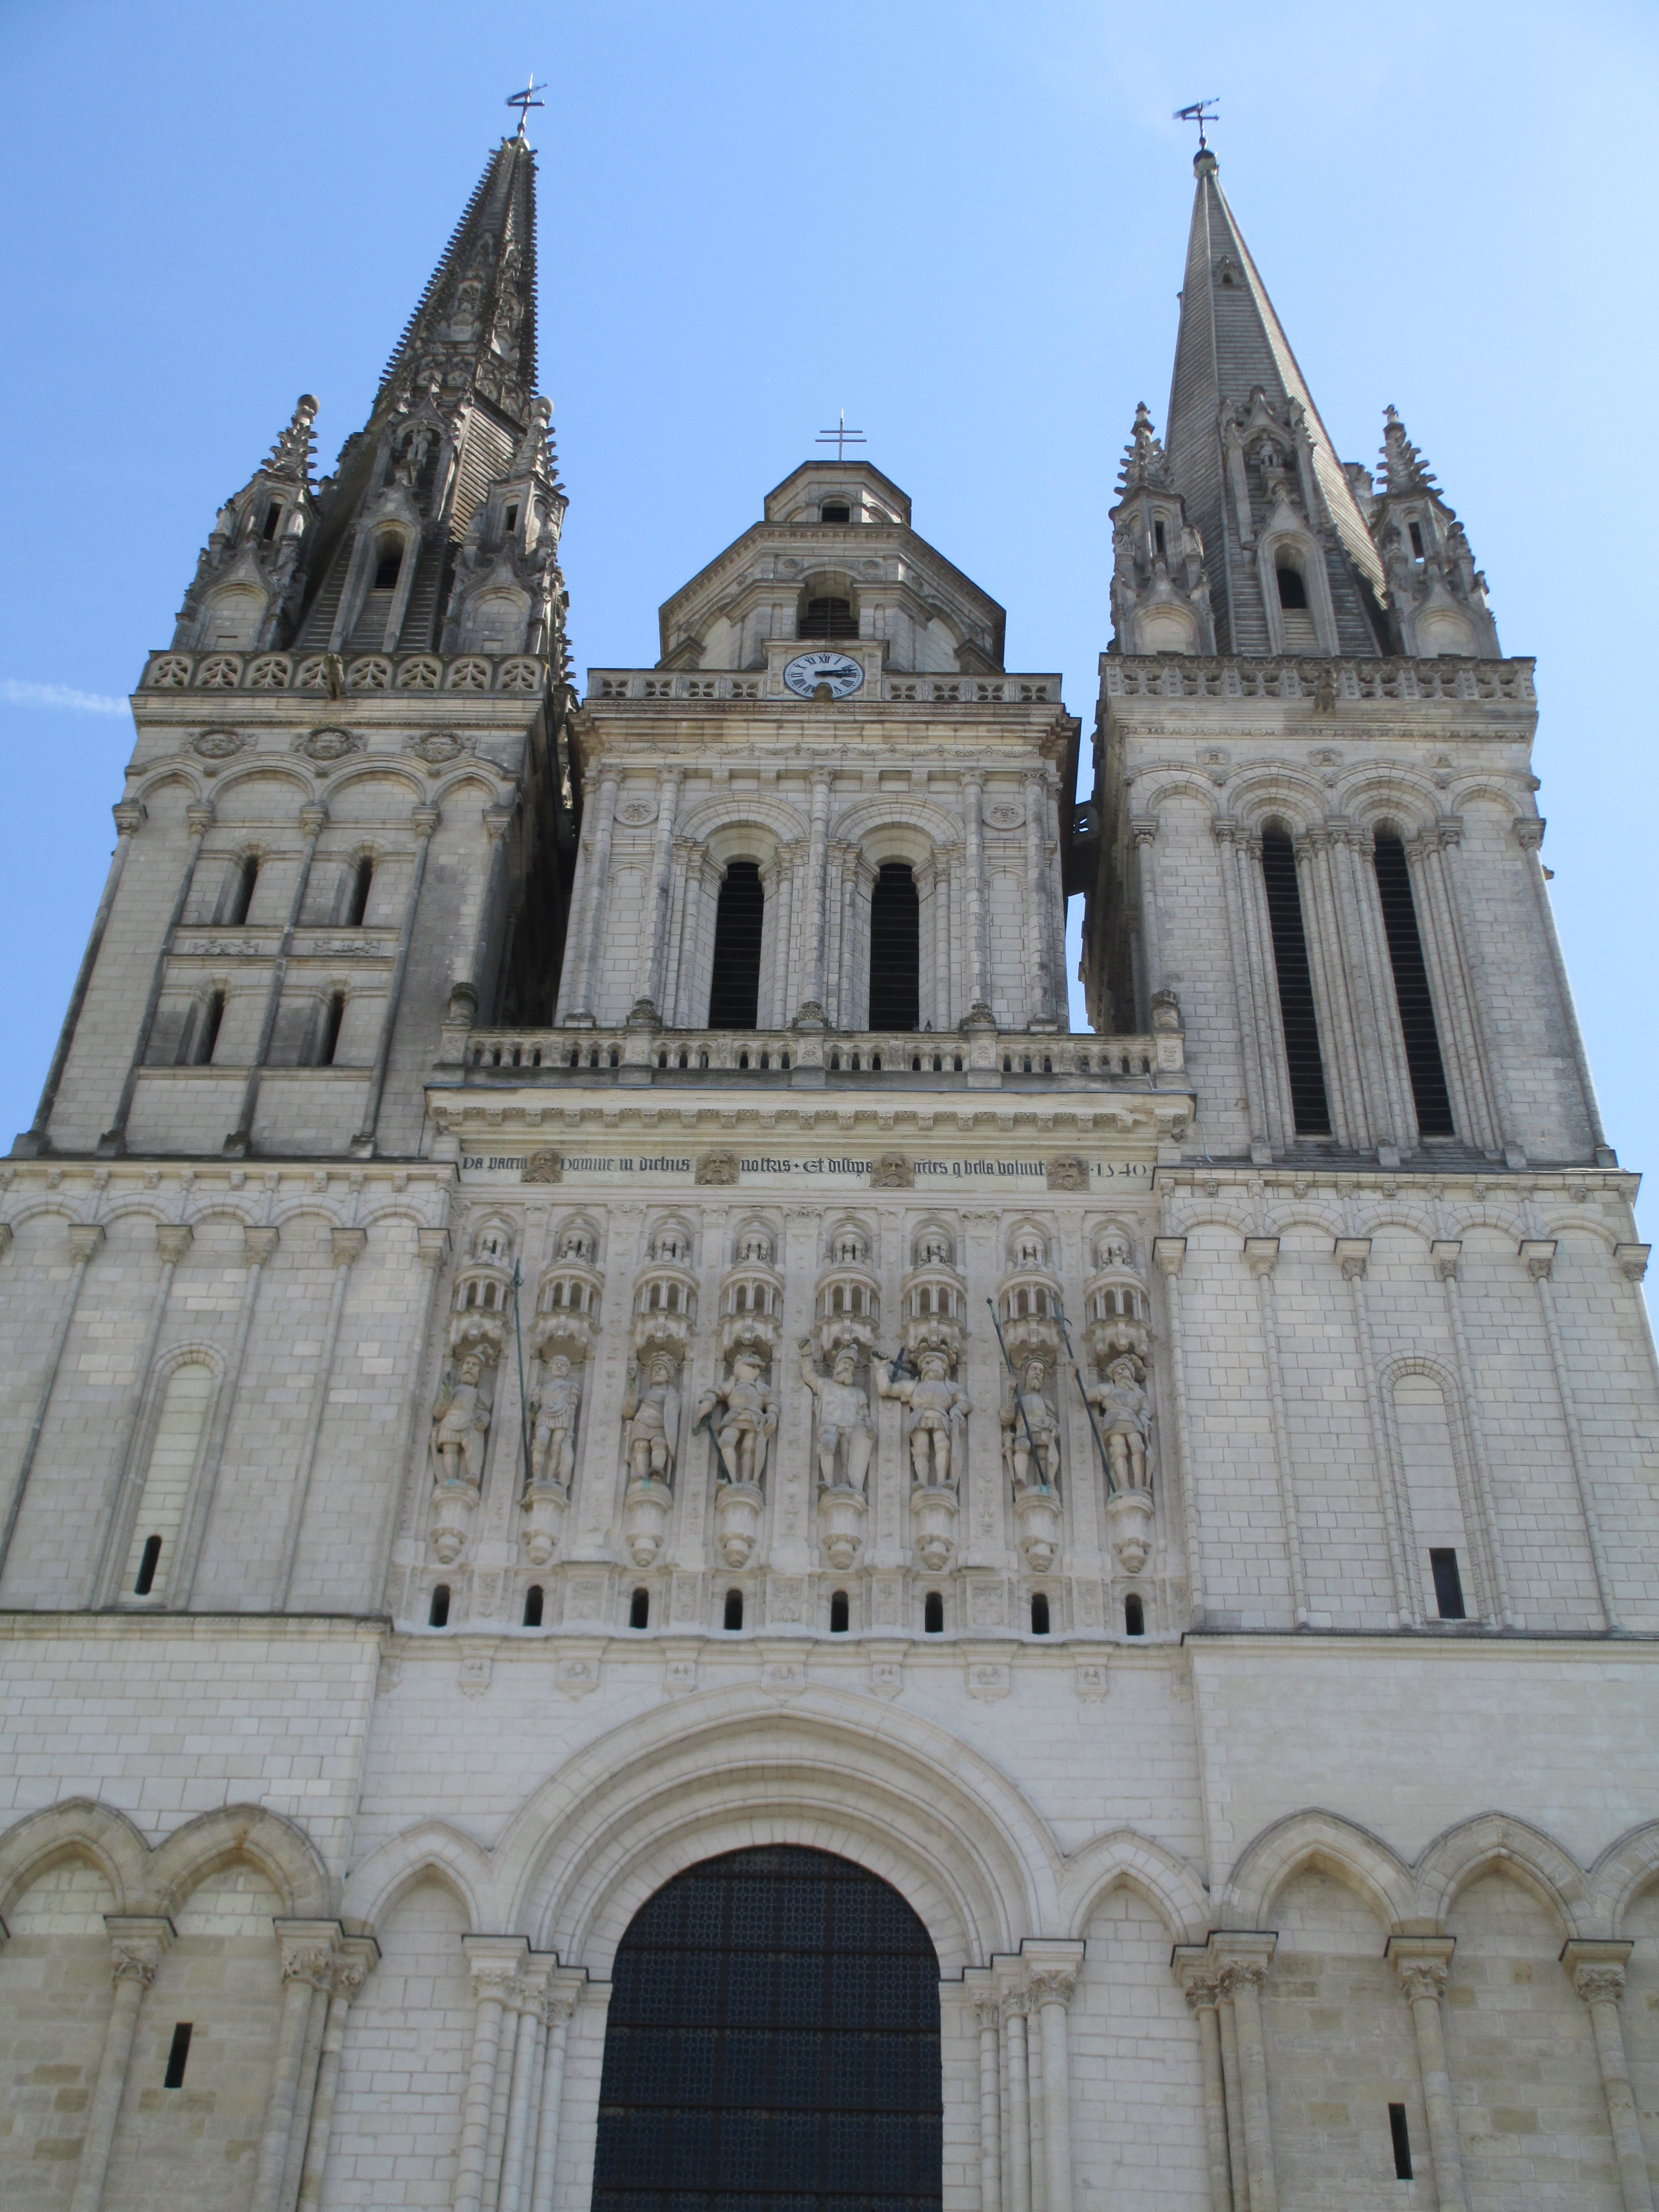 A Pictorial Tour of Medieval Cathedrals  – Historical Ragbag